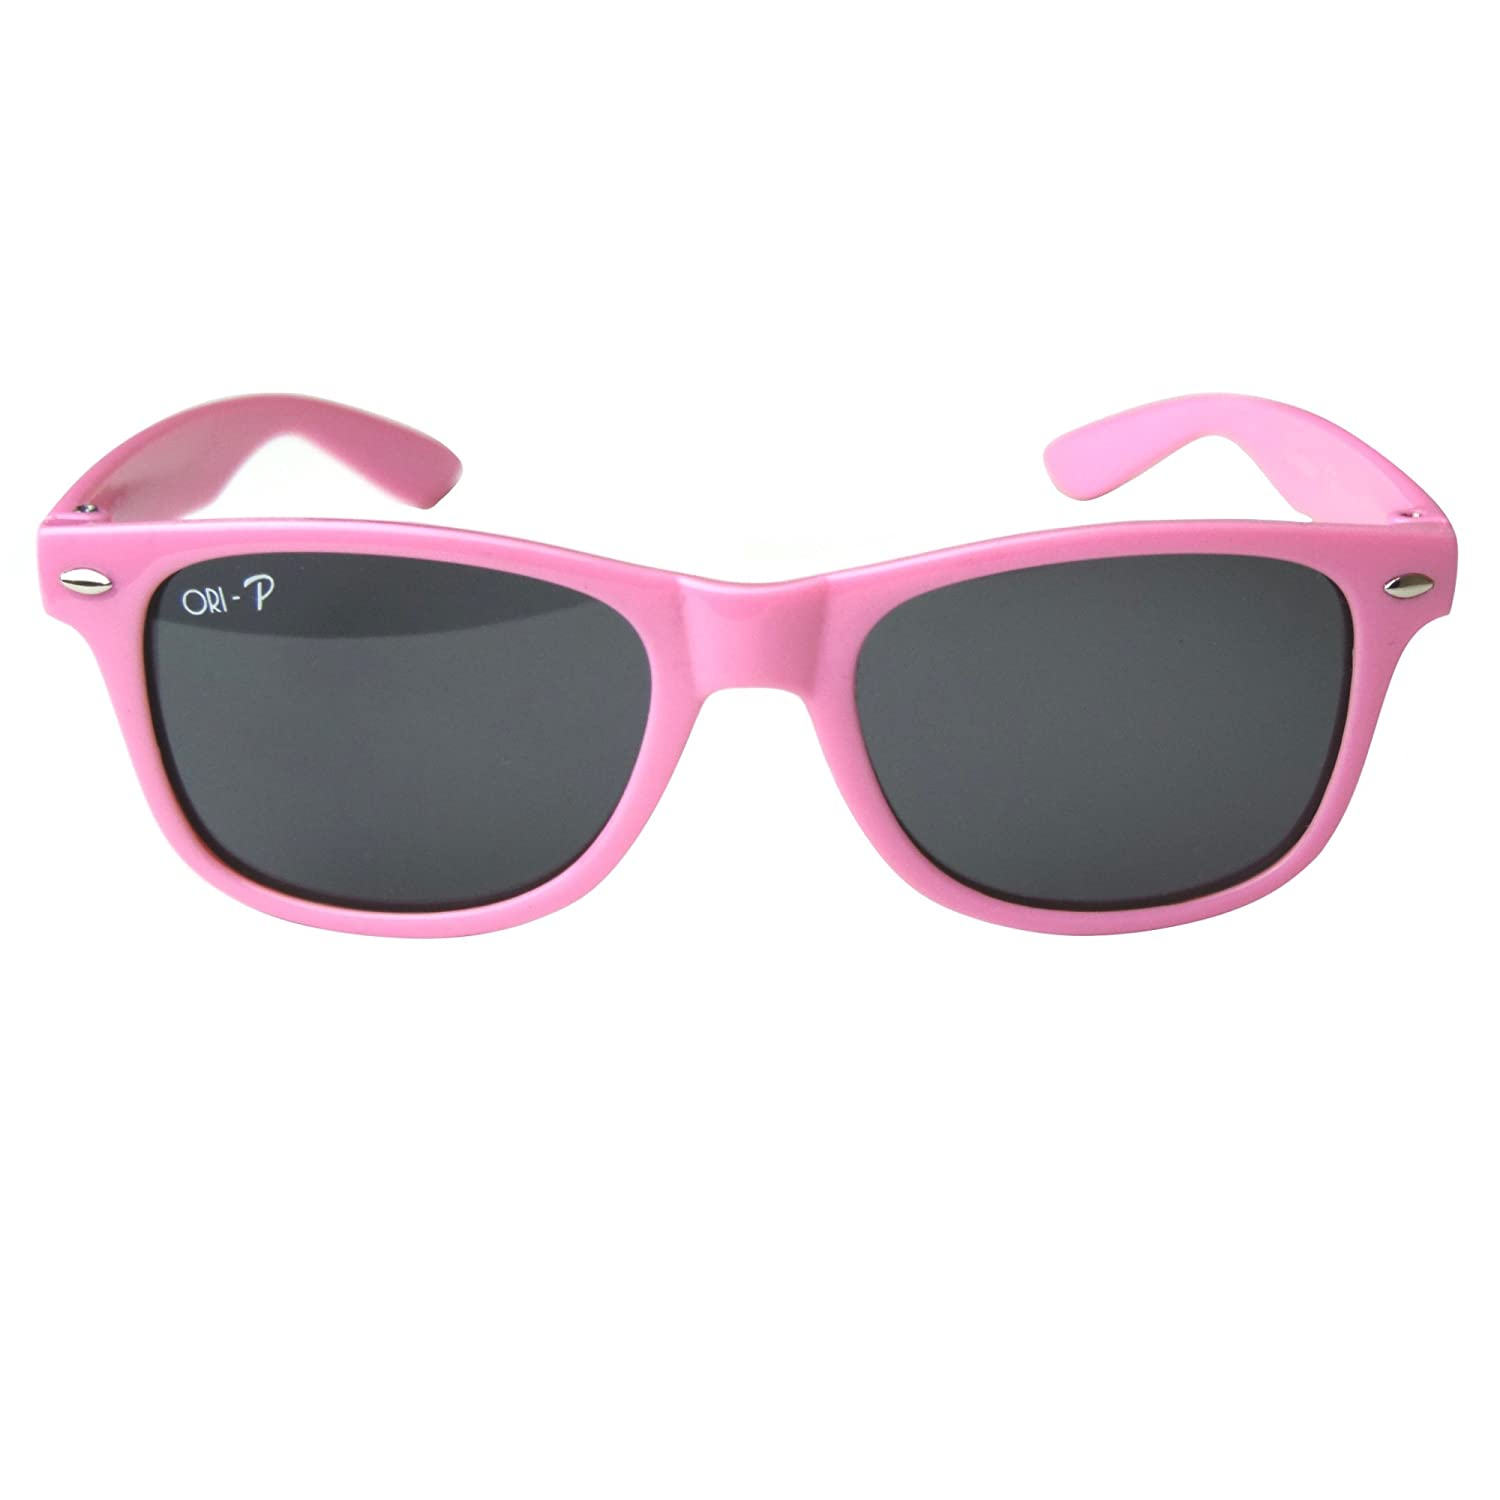 425feb13b48 Polarspex Girls Elastic Cateye Kids Toddler Girls Polarized BPA Free  Sunglasses PSX06